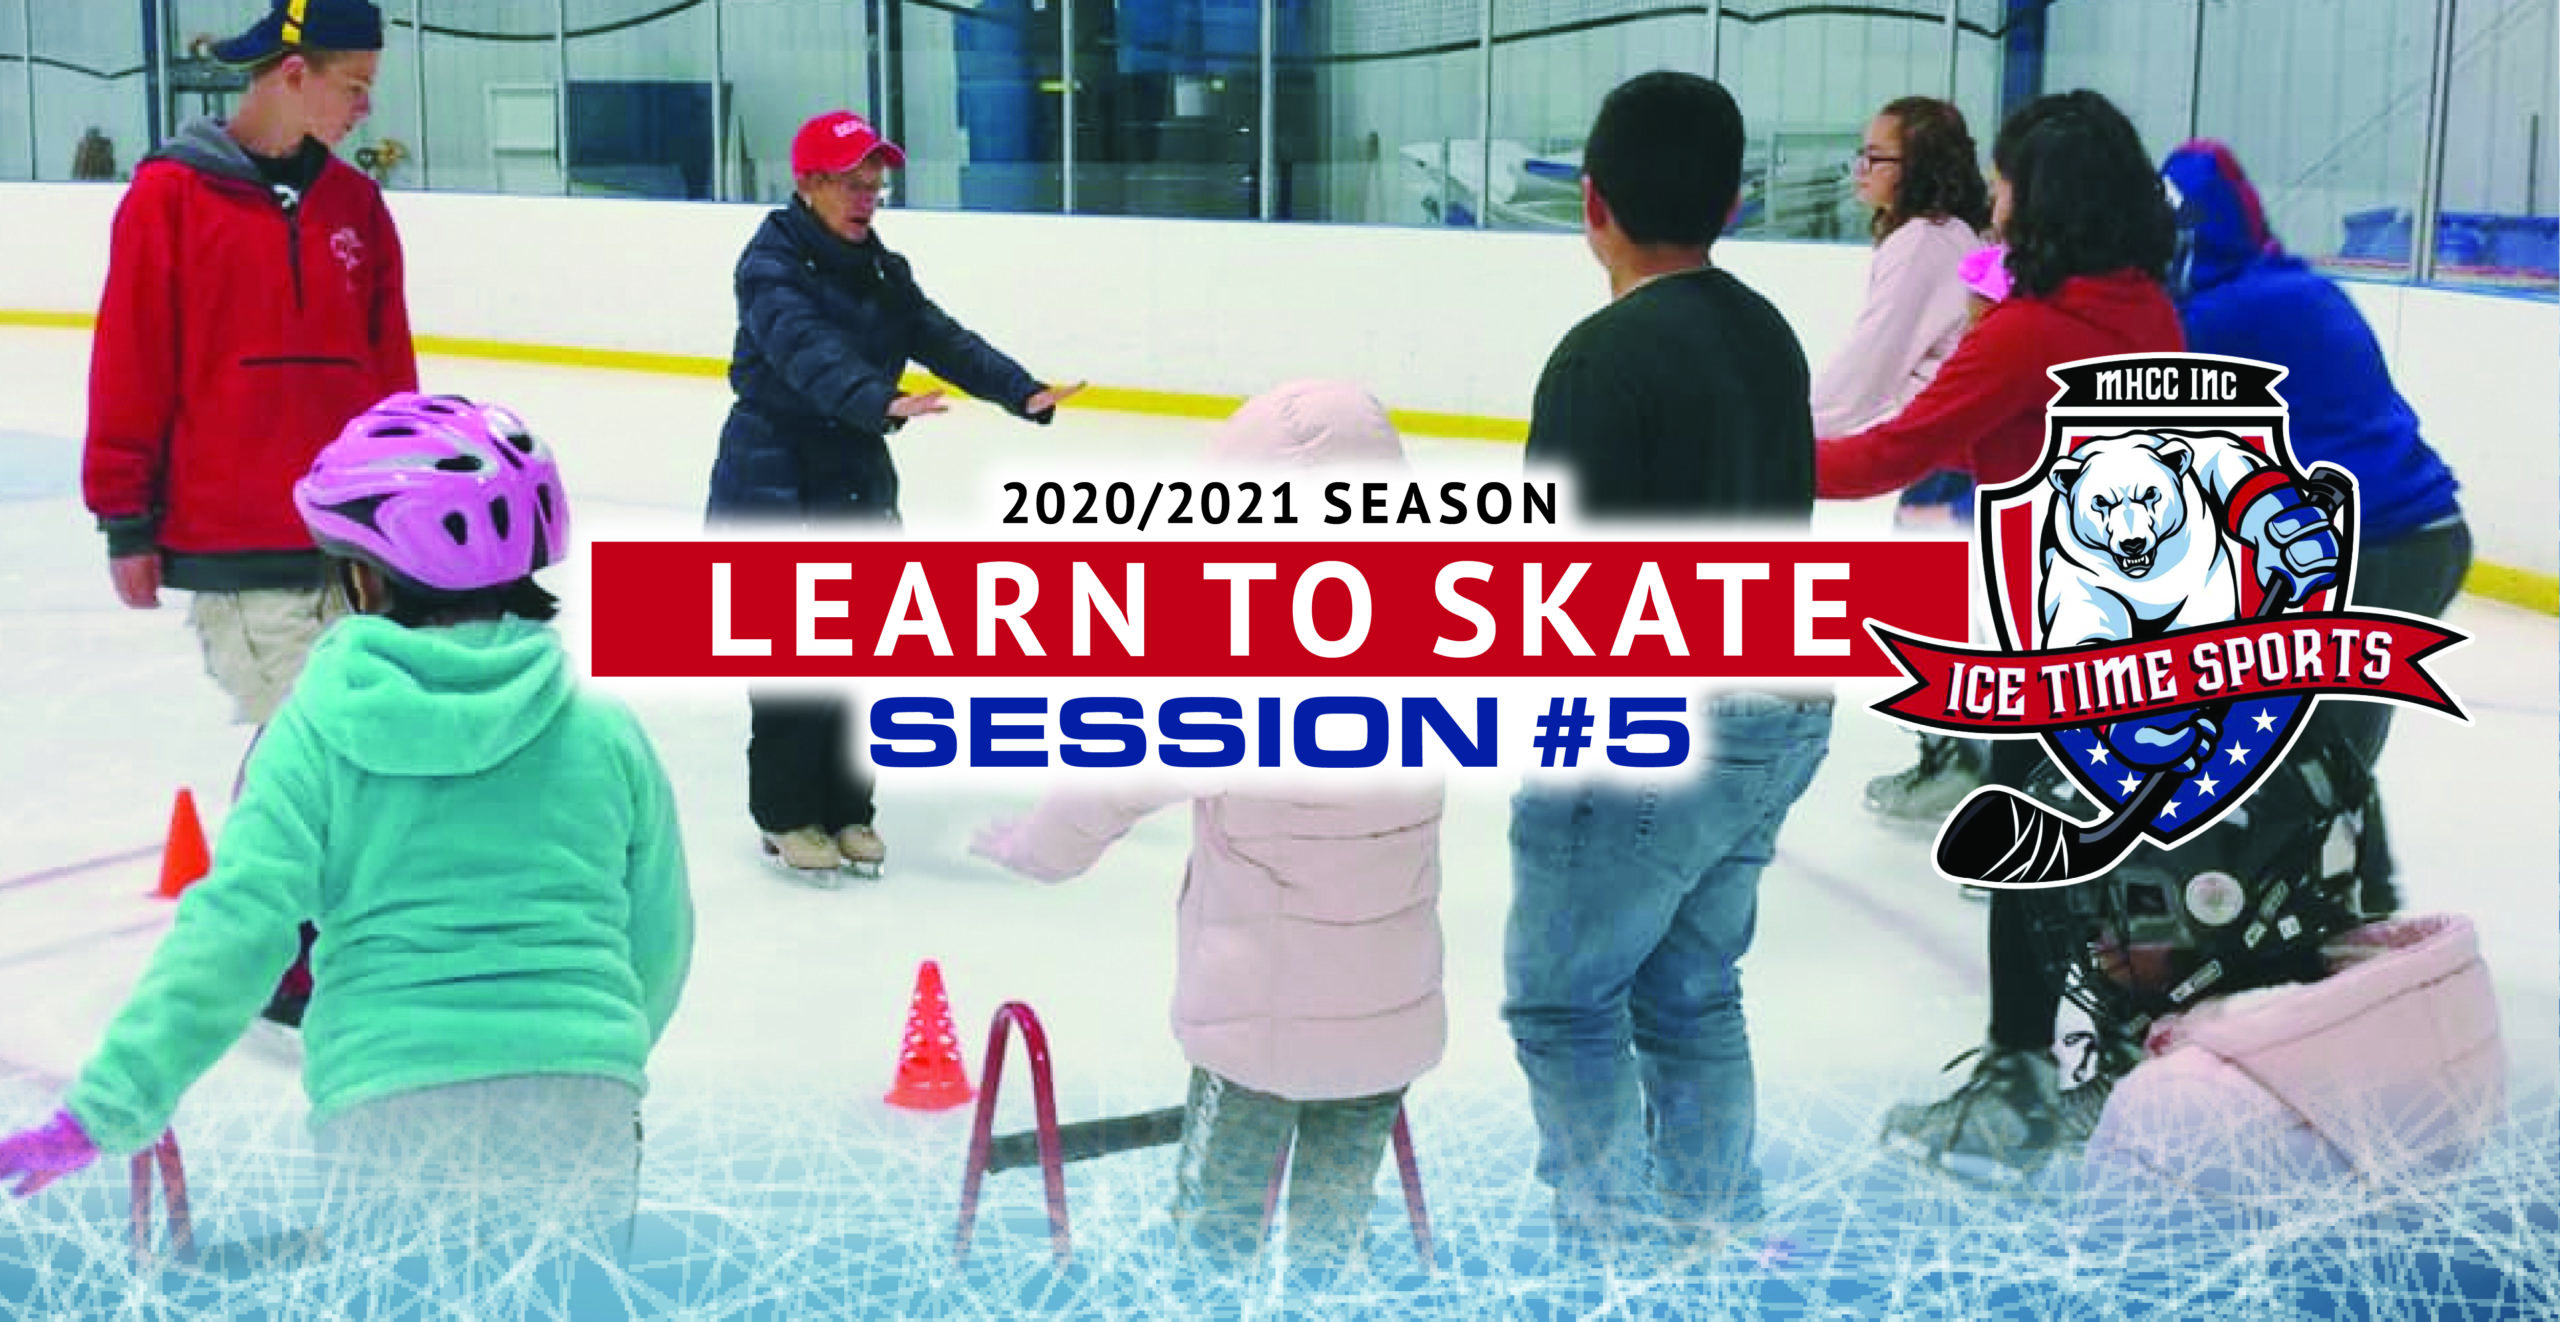 Learn to Skate – Session #5